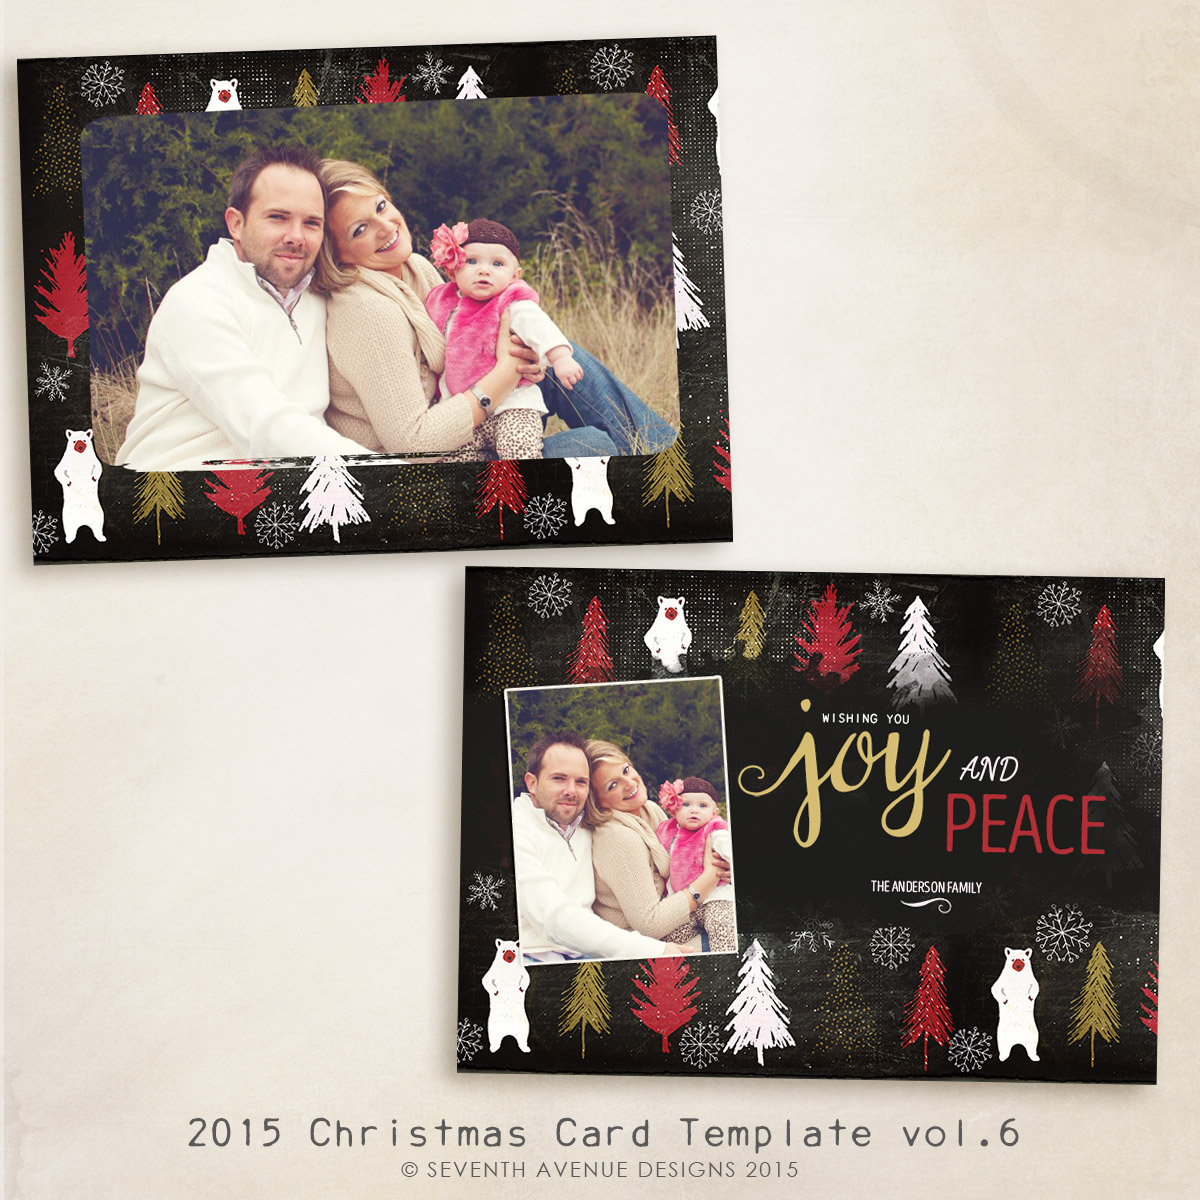 2015 Christmas Card Templates vol.6 -- 7x5 inch card template